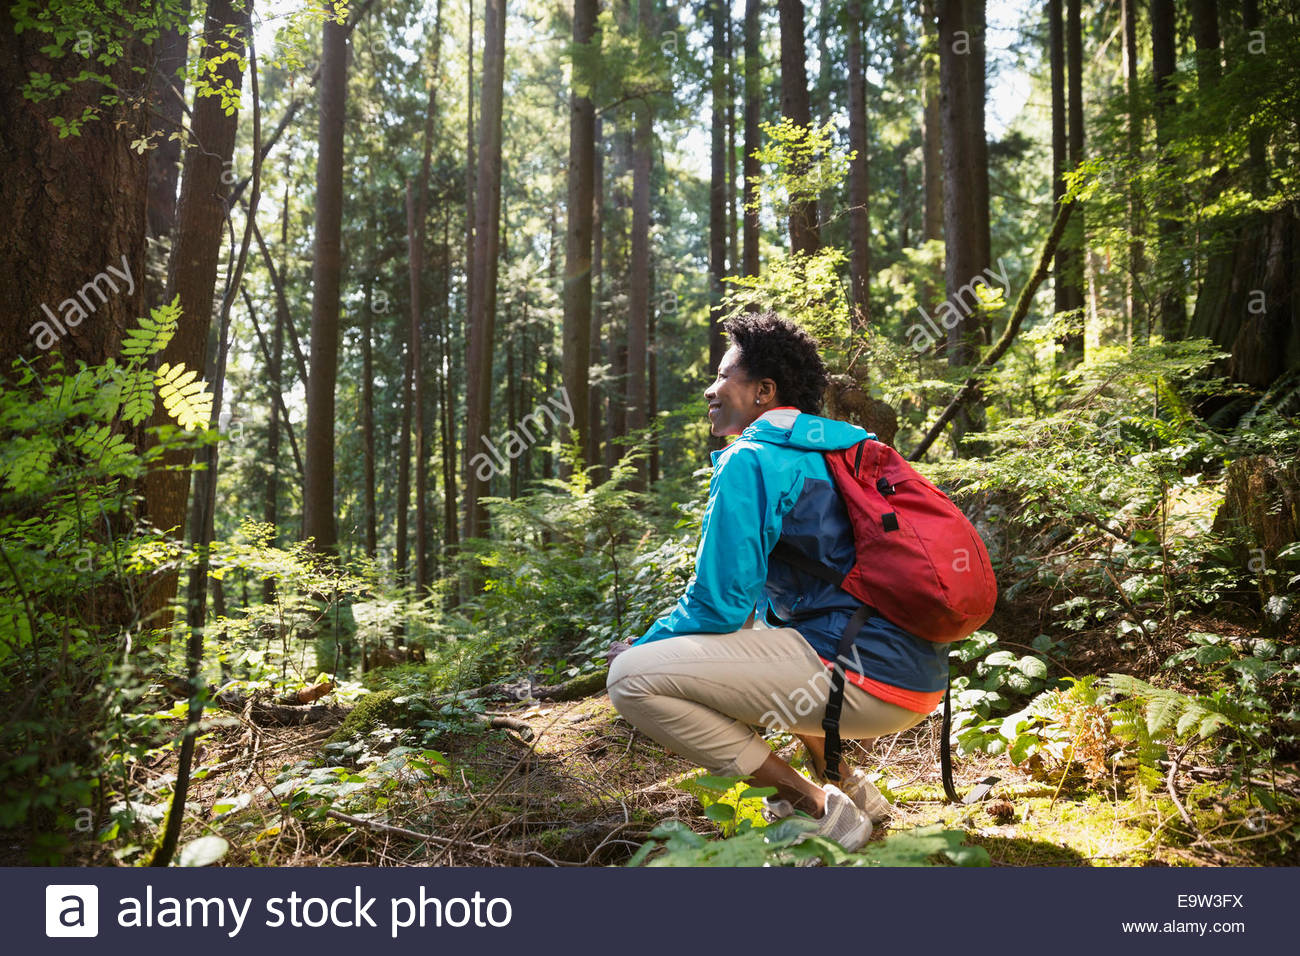 Woman with backpack crouching in sunny woods - Stock Image